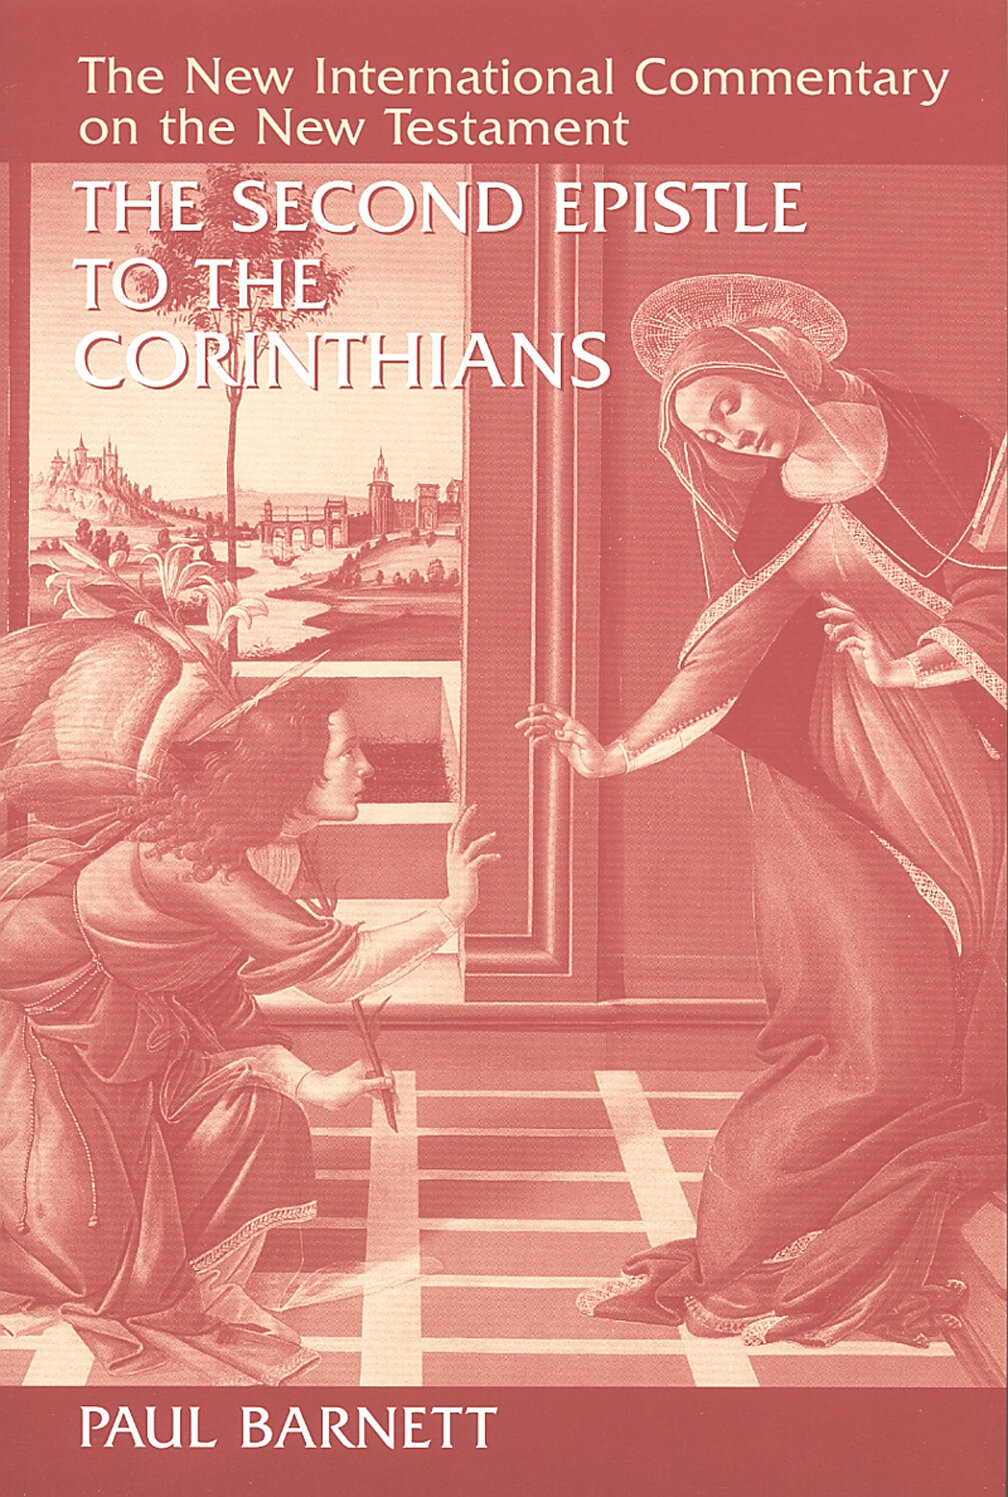 The Second Epistle to the Corinthians (The New International Commentary on the New Testament | NICNT)